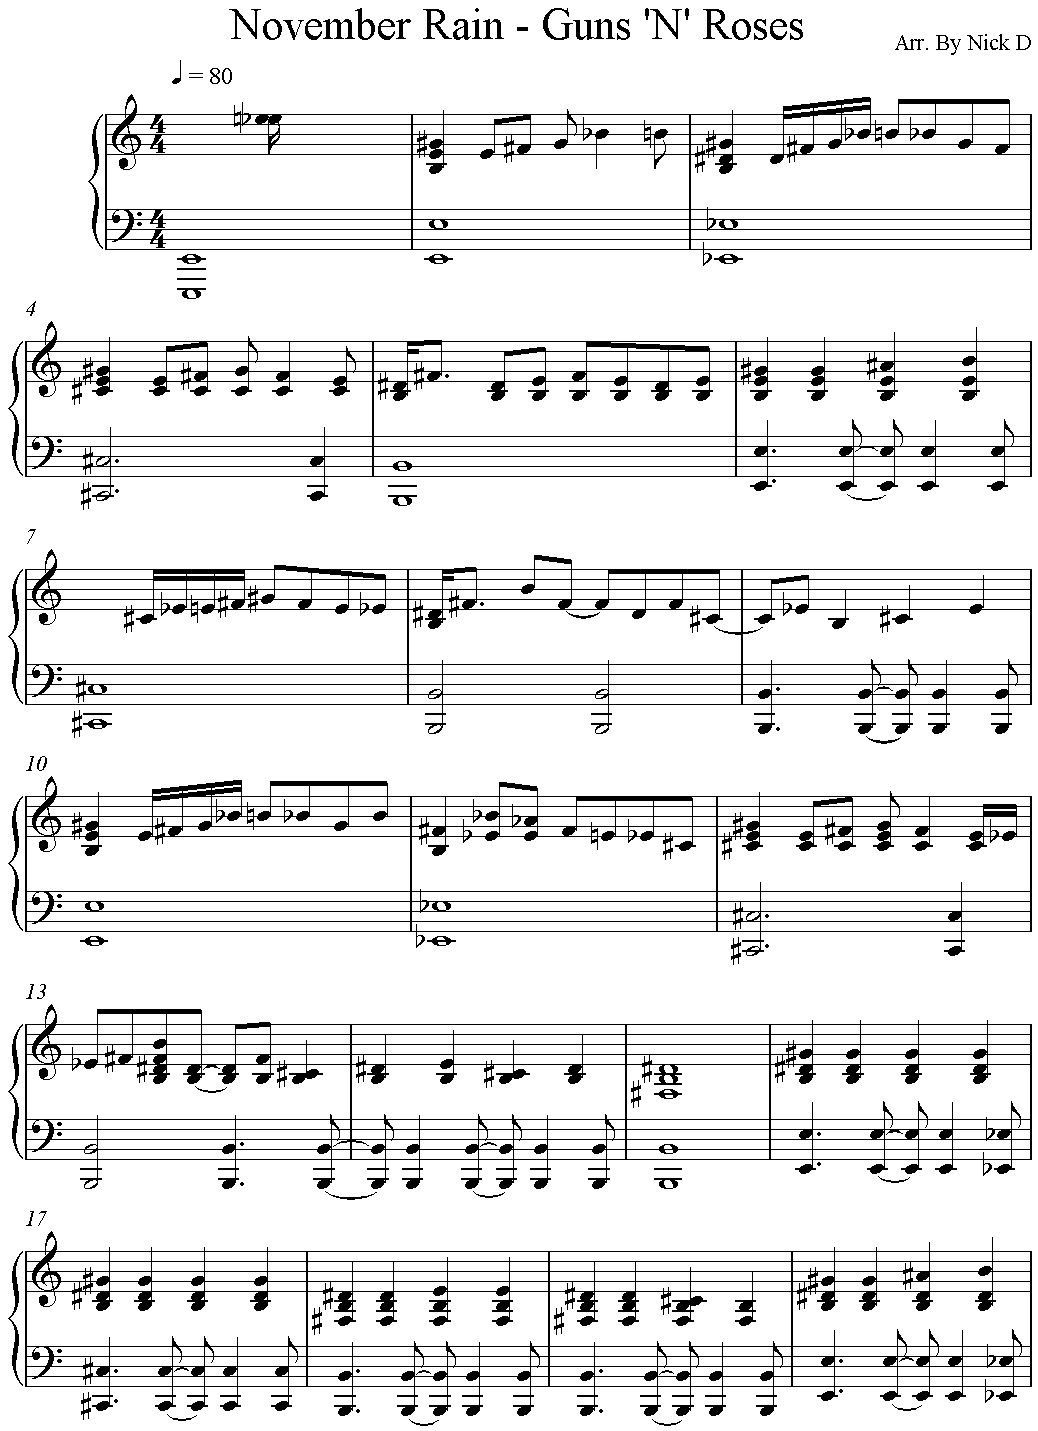 brad rosss paper on the song november rain Guns n' roses - november rain chords capo 4 guns n' roses love song lyrics for: november rain-guns n roses with chords for ukulele, guitar banjo etc.